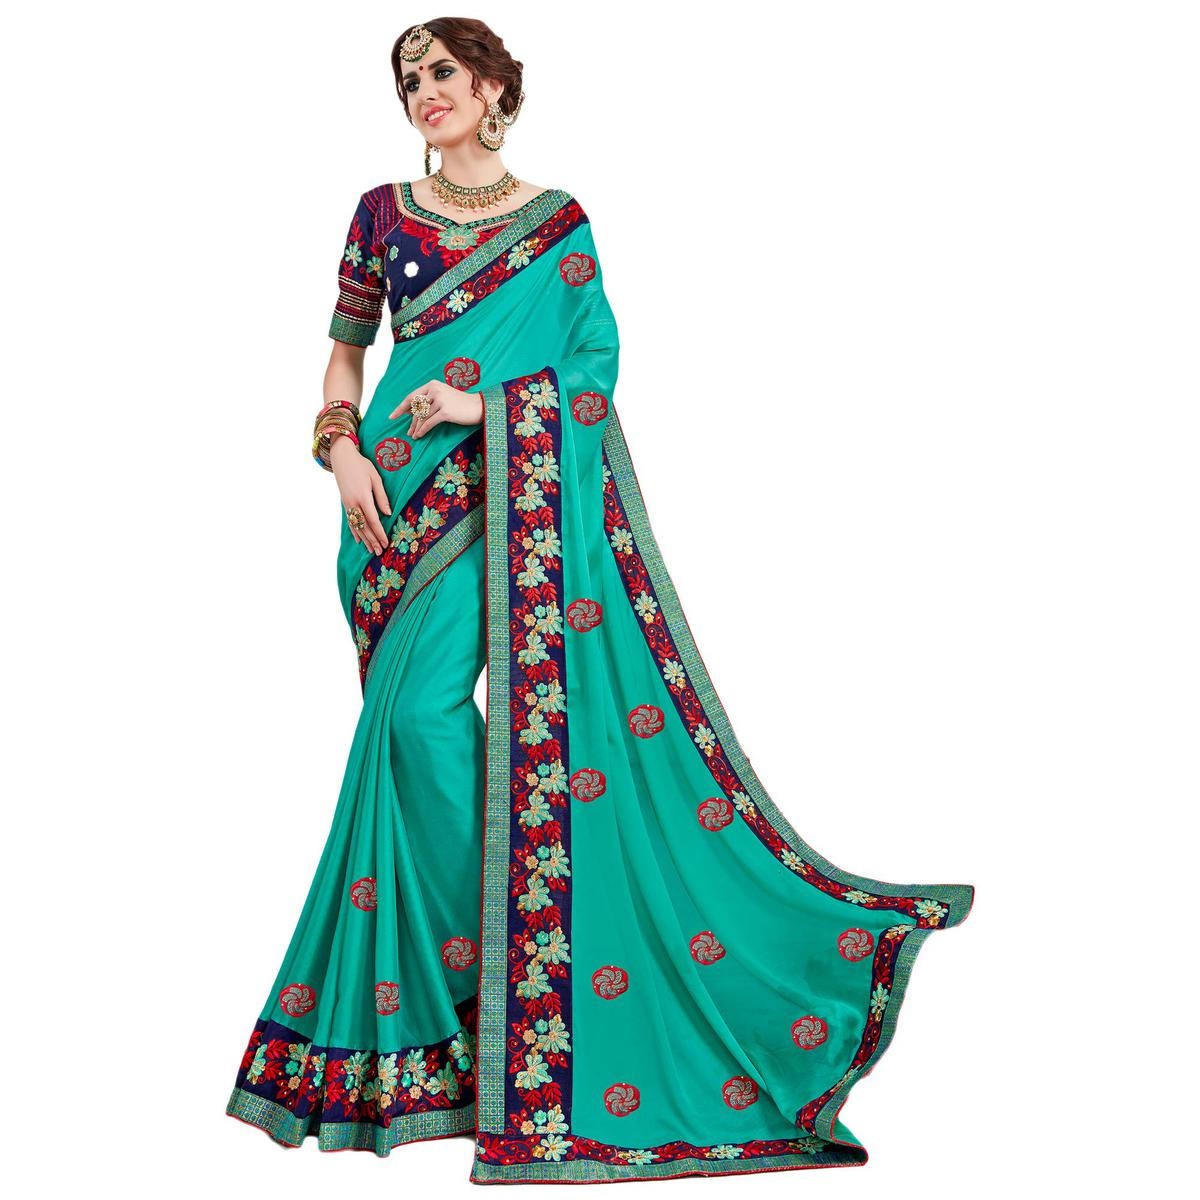 Impressive Turquoise Green Colored Partywear Embroidered Georgette Saree